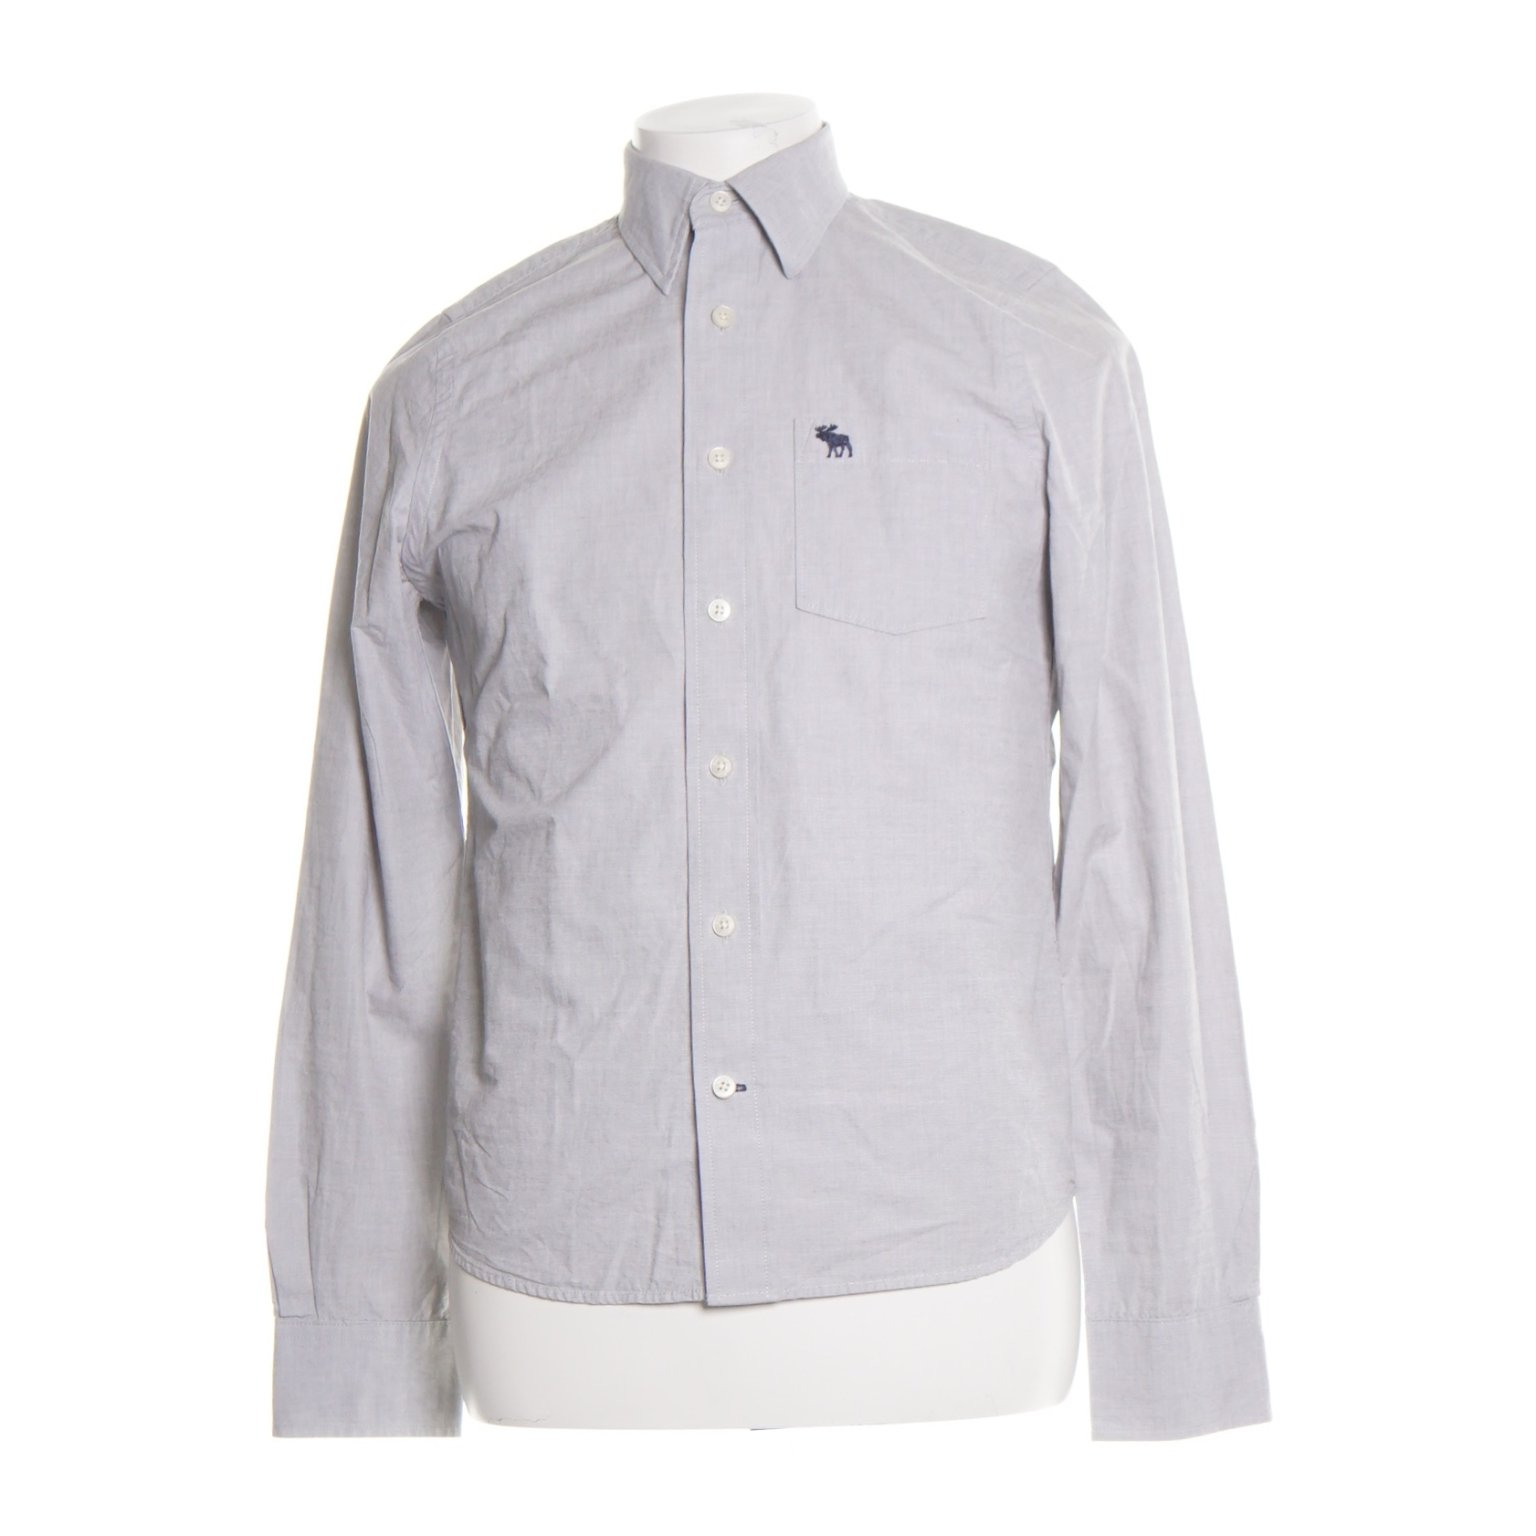 Abercrombie & Fitch, Buttondown-skjorta, Strl: XL, muscle, Grå